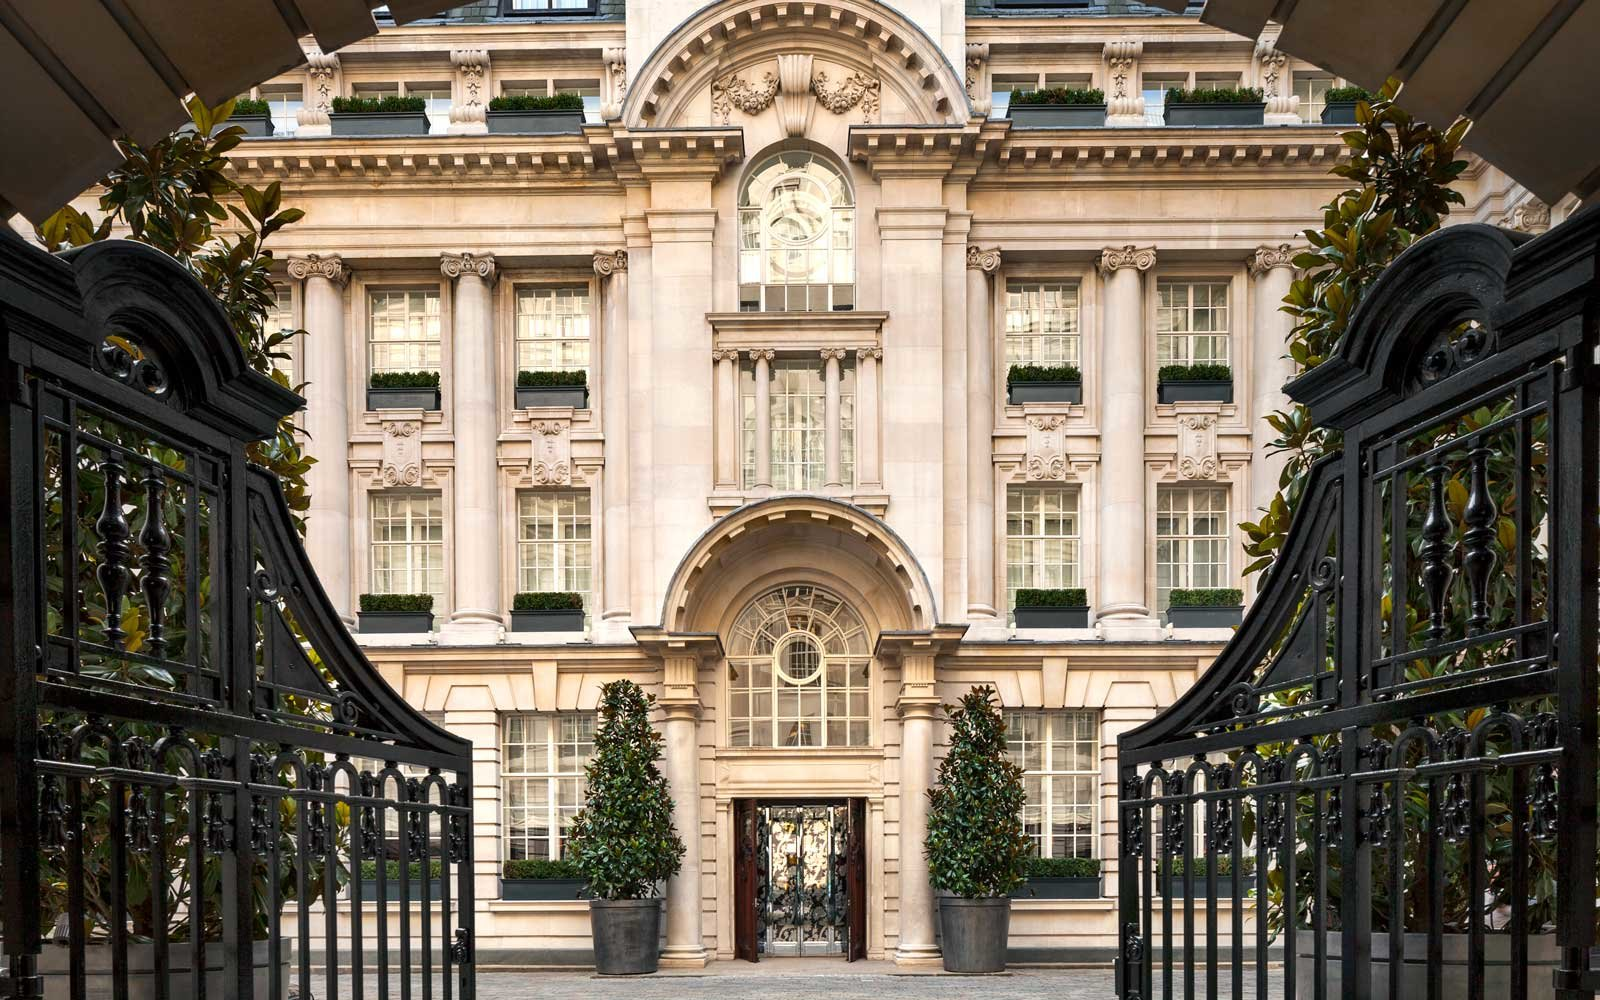 Gates of the Rosewood Hotel, London